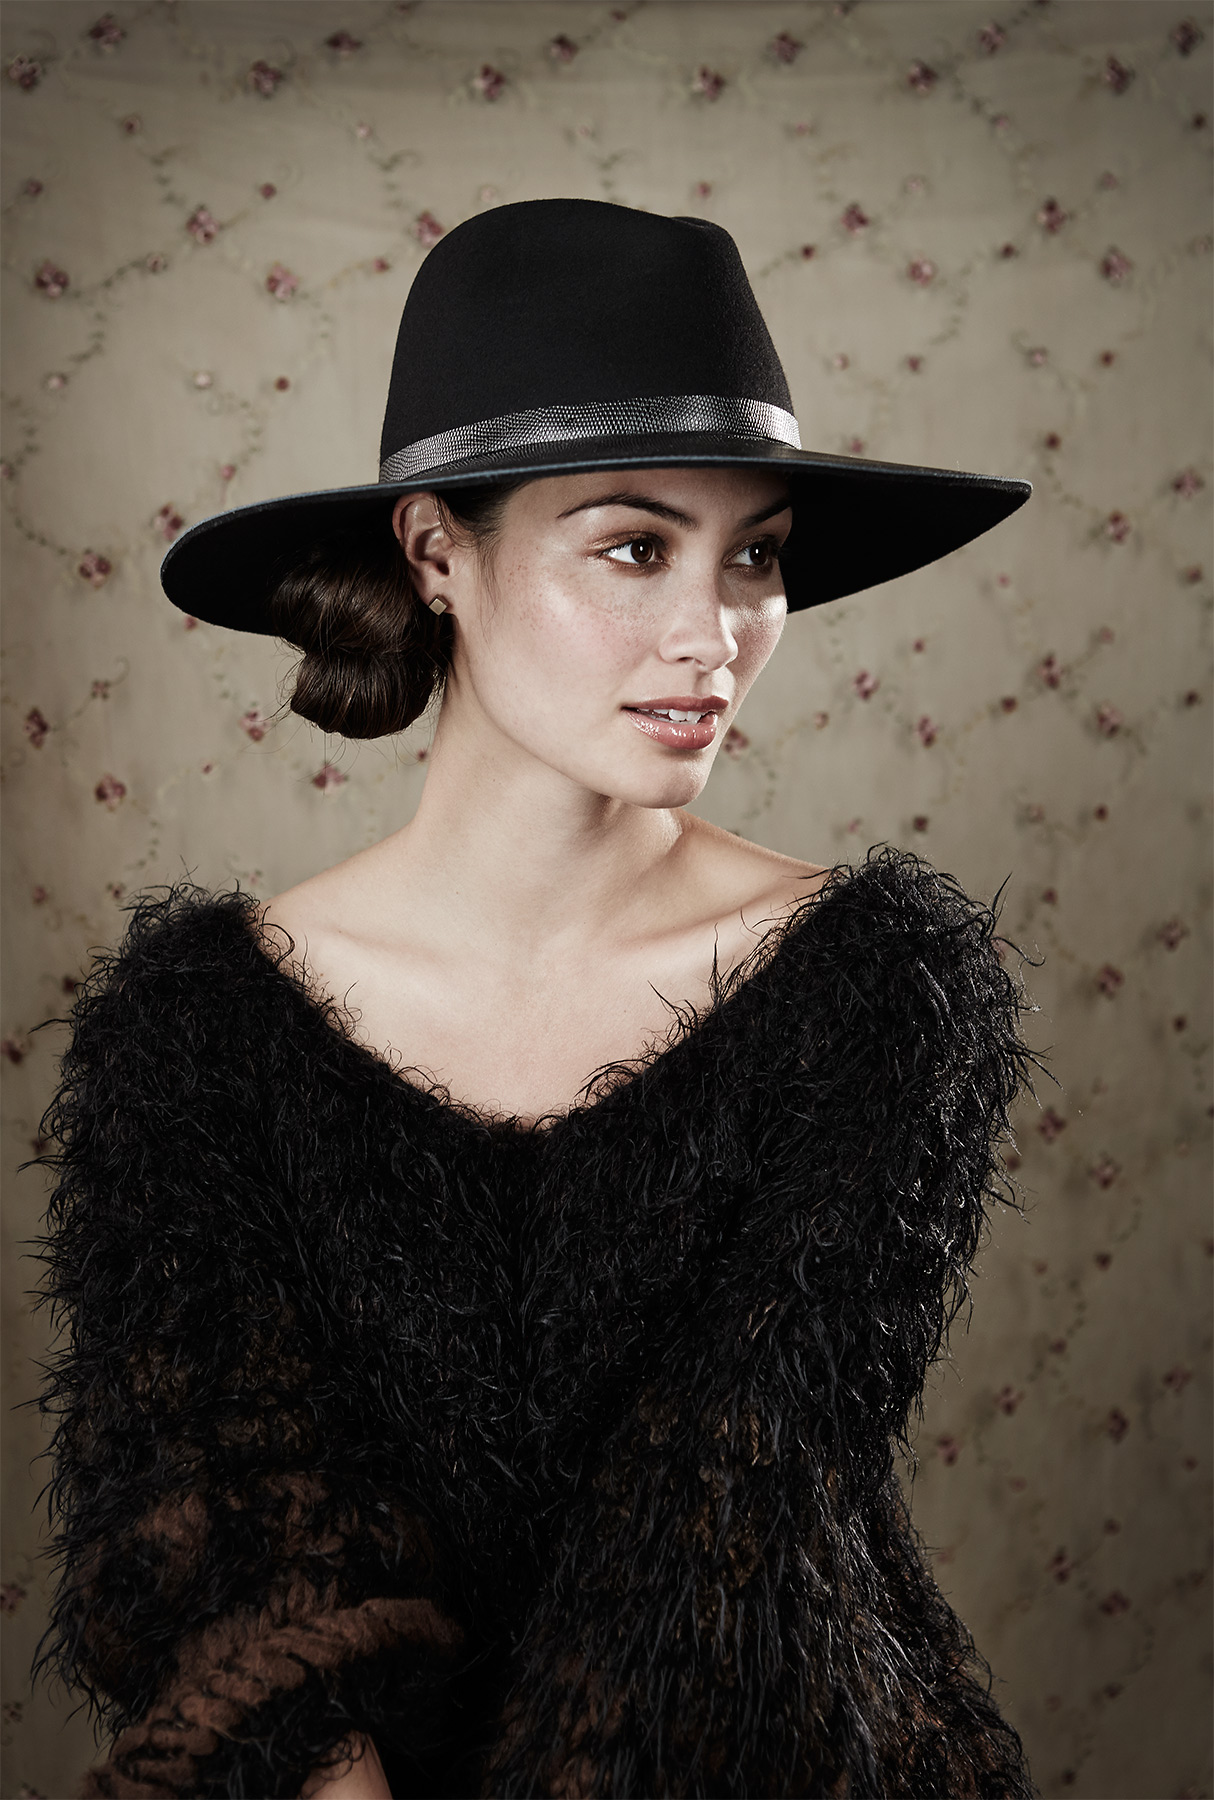 Chad Riley Fashion Photography - Goorin Hats 3